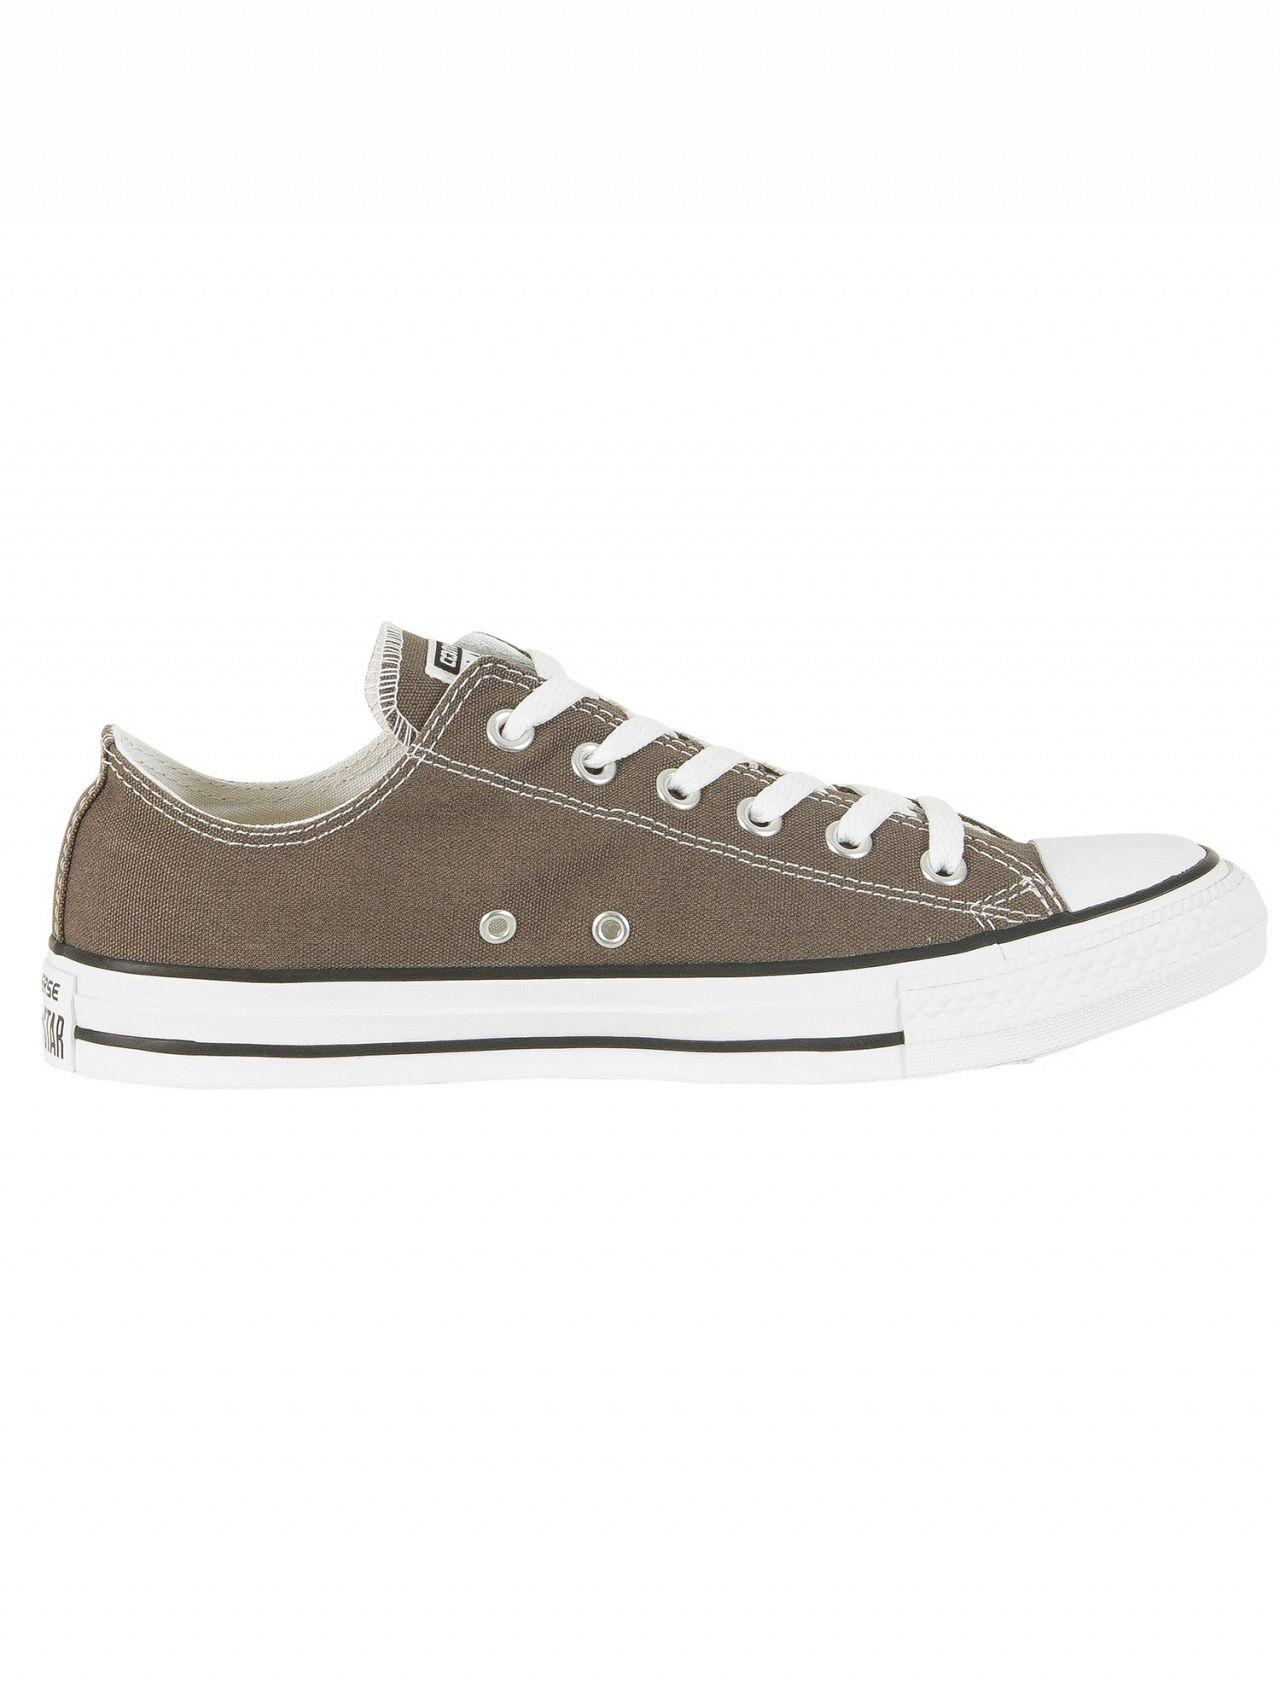 Converse Rubber Charcoal All Star Ox Trainers in Grey for Men